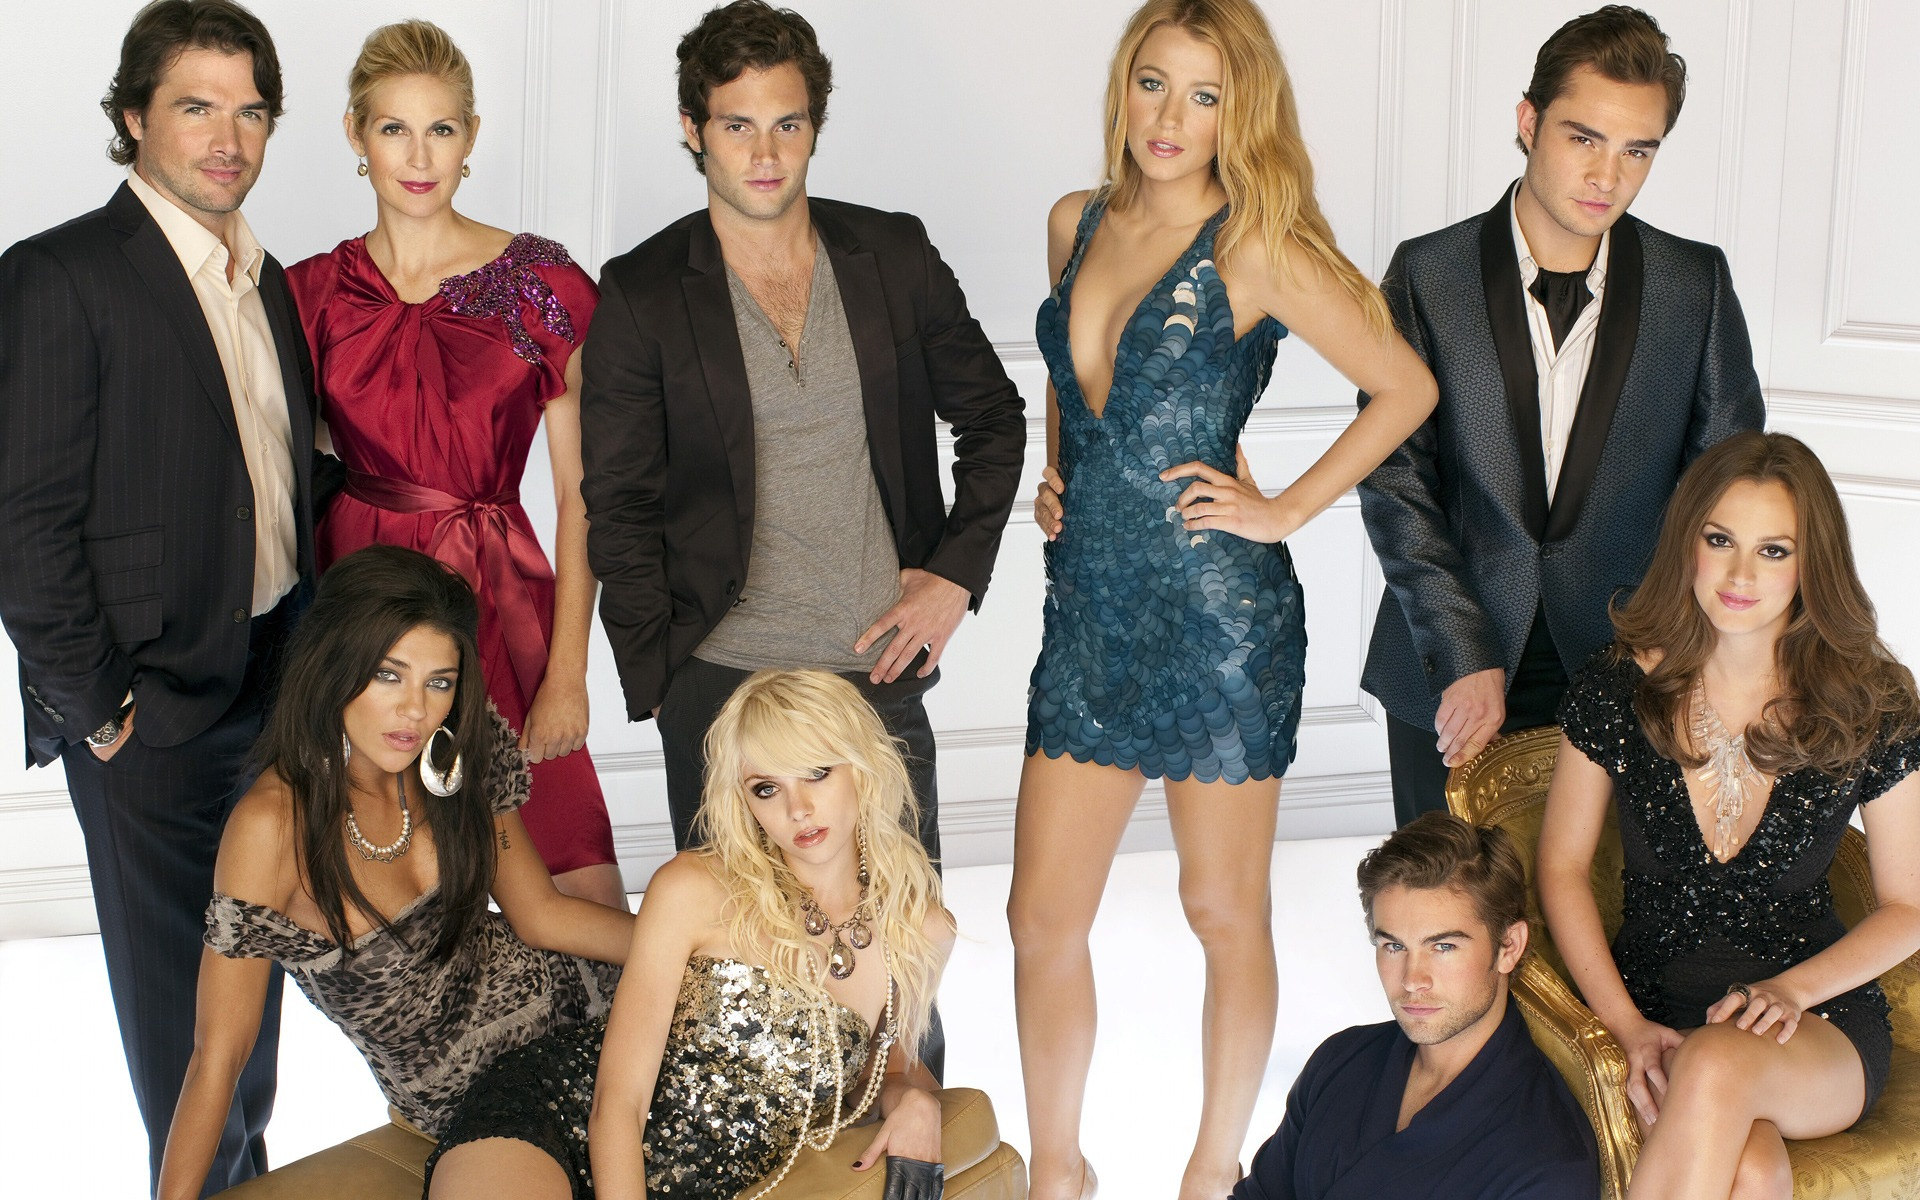 WTF: The Gossip Girl we knew and loved could've been very different